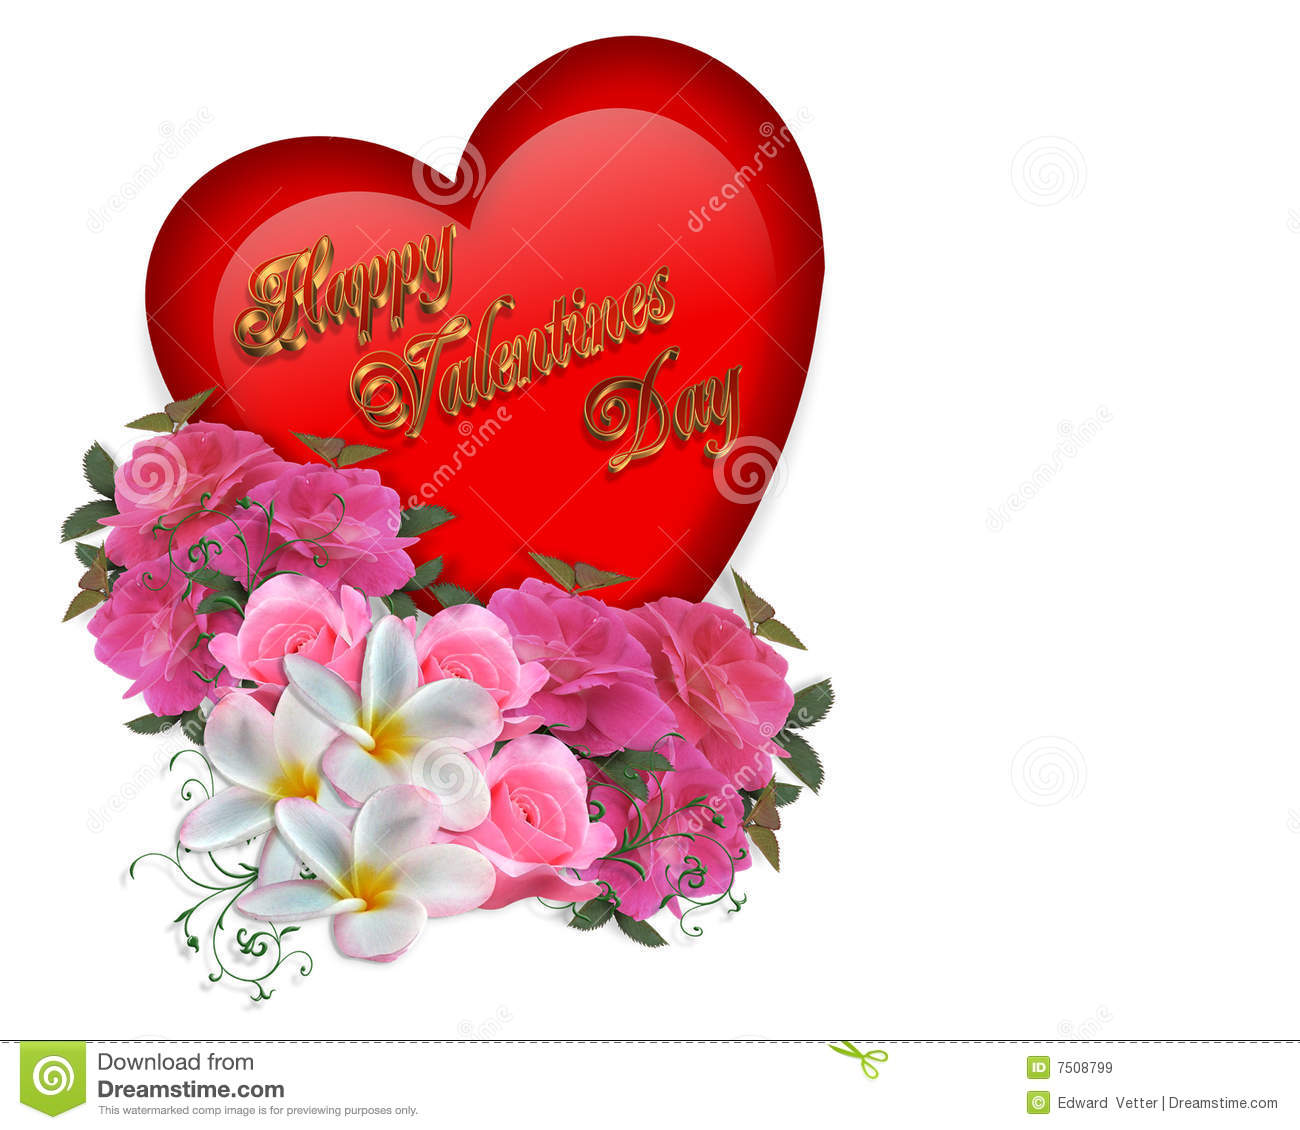 valentine heart and flowers royalty free stock images  image, Beautiful flower